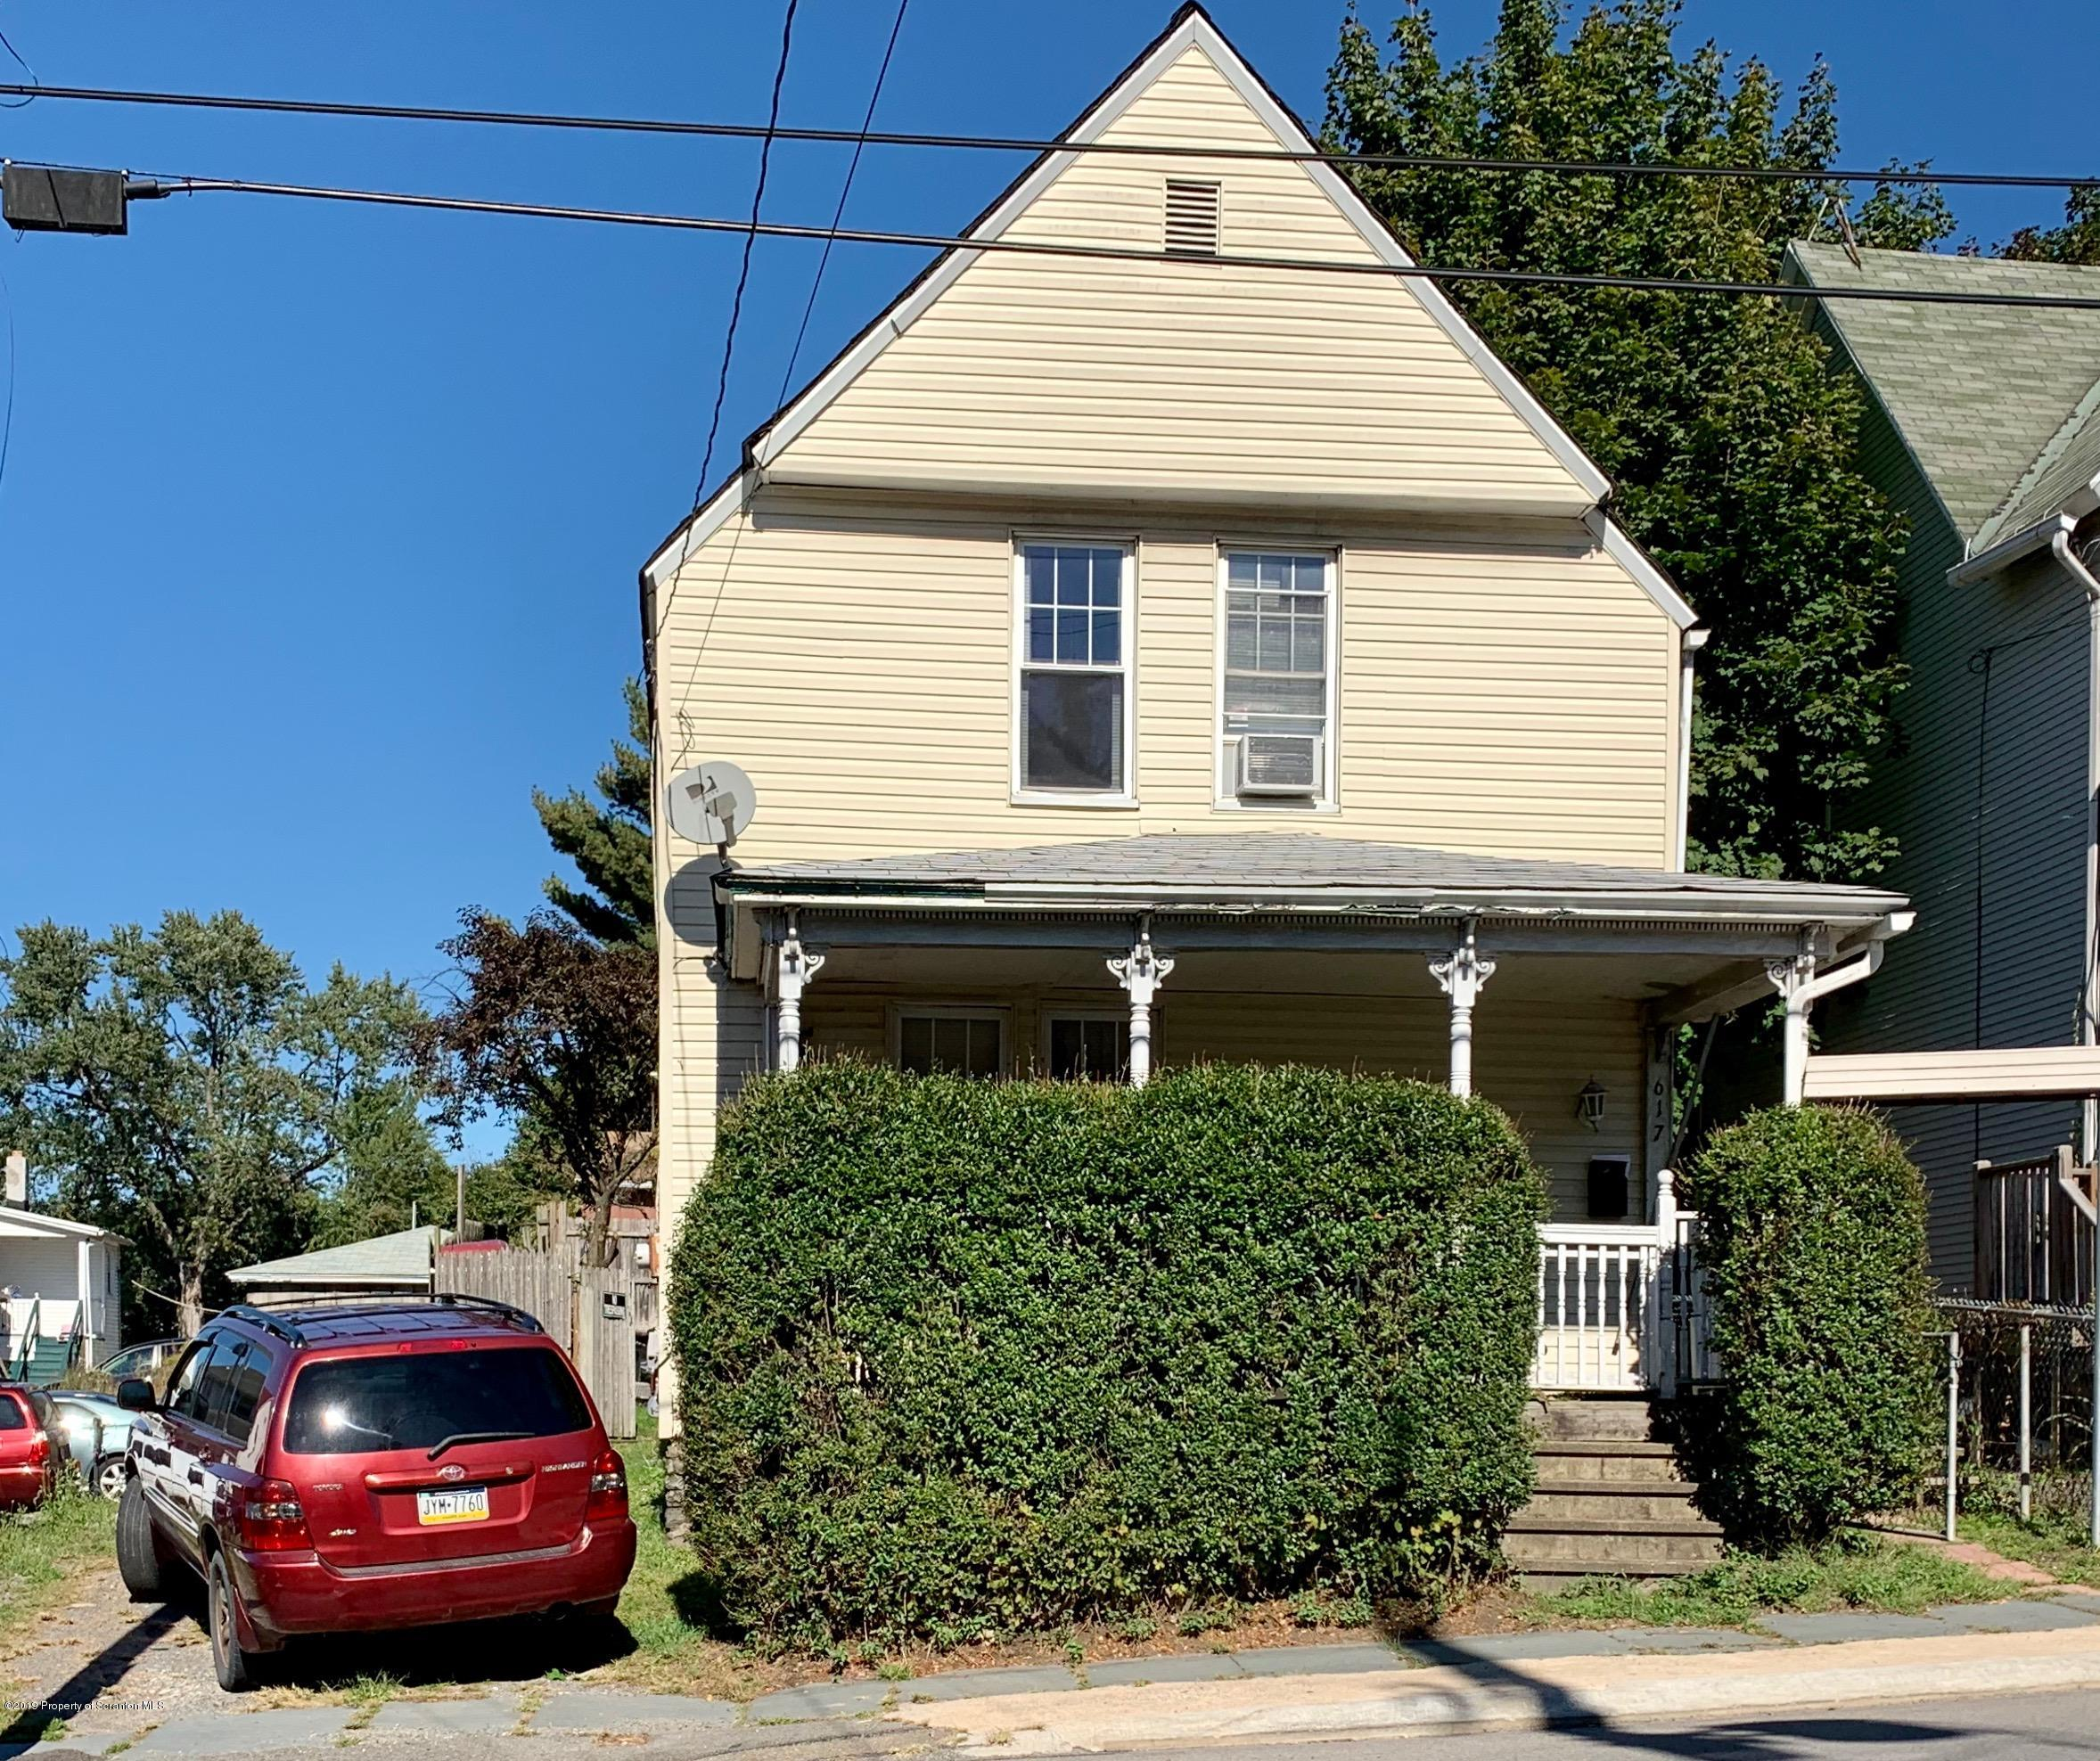 617 Green Ridge St, Scranton, Pennsylvania 18509, 3 Bedrooms Bedrooms, 5 Rooms Rooms,1 BathroomBathrooms,Single Family,For Sale,Green Ridge,19-4982